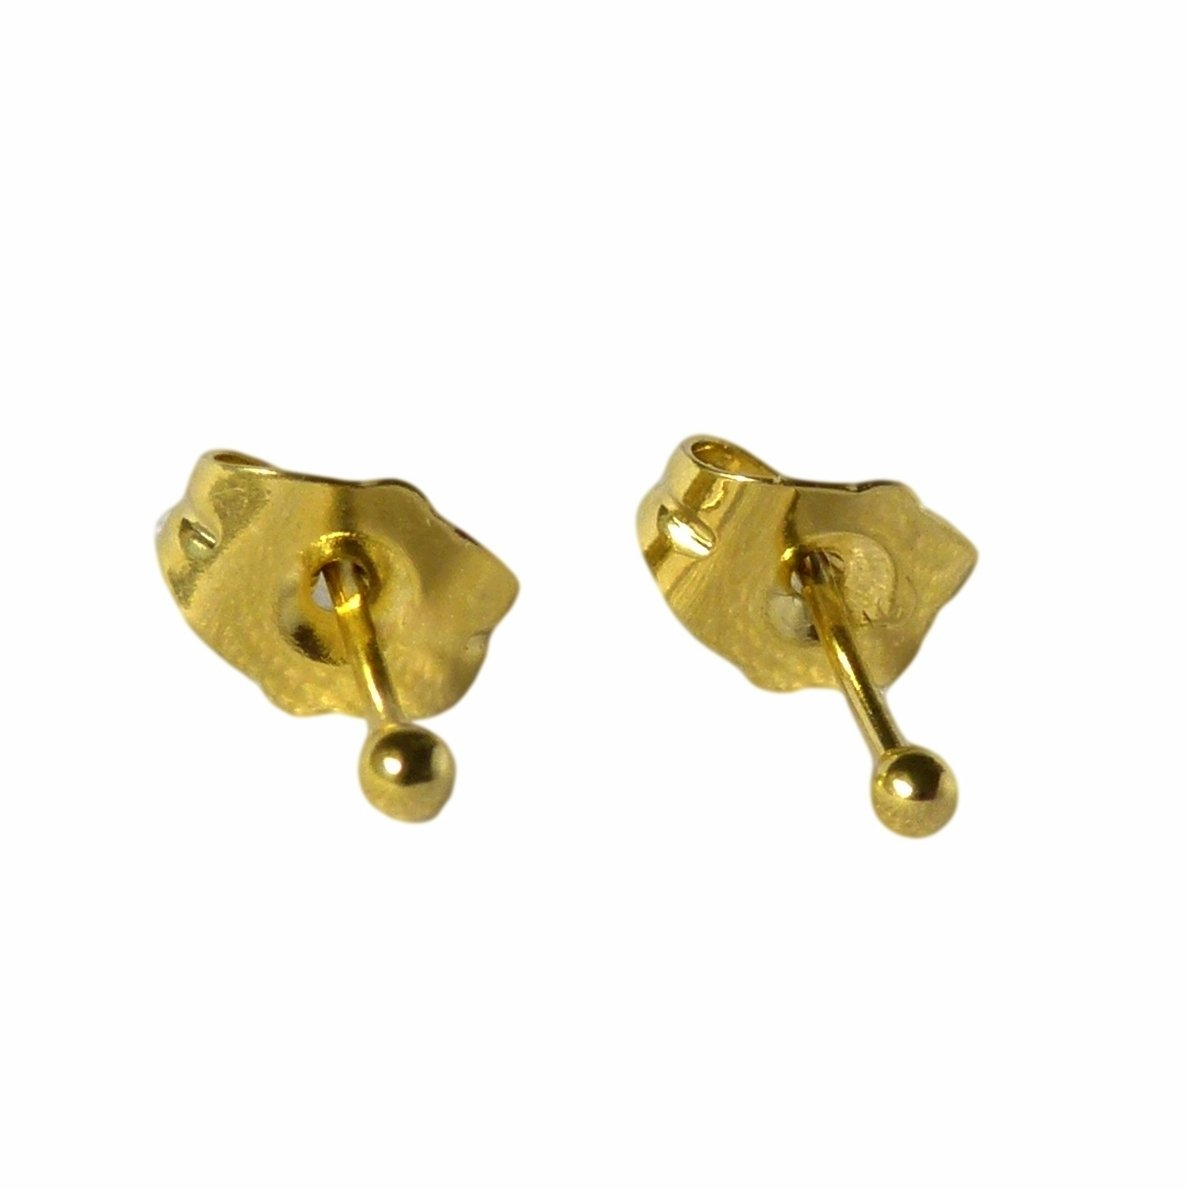 Teeny Tiny Small 18ct Gold Filled Ball Stud Earrings 2mm Girls Womens